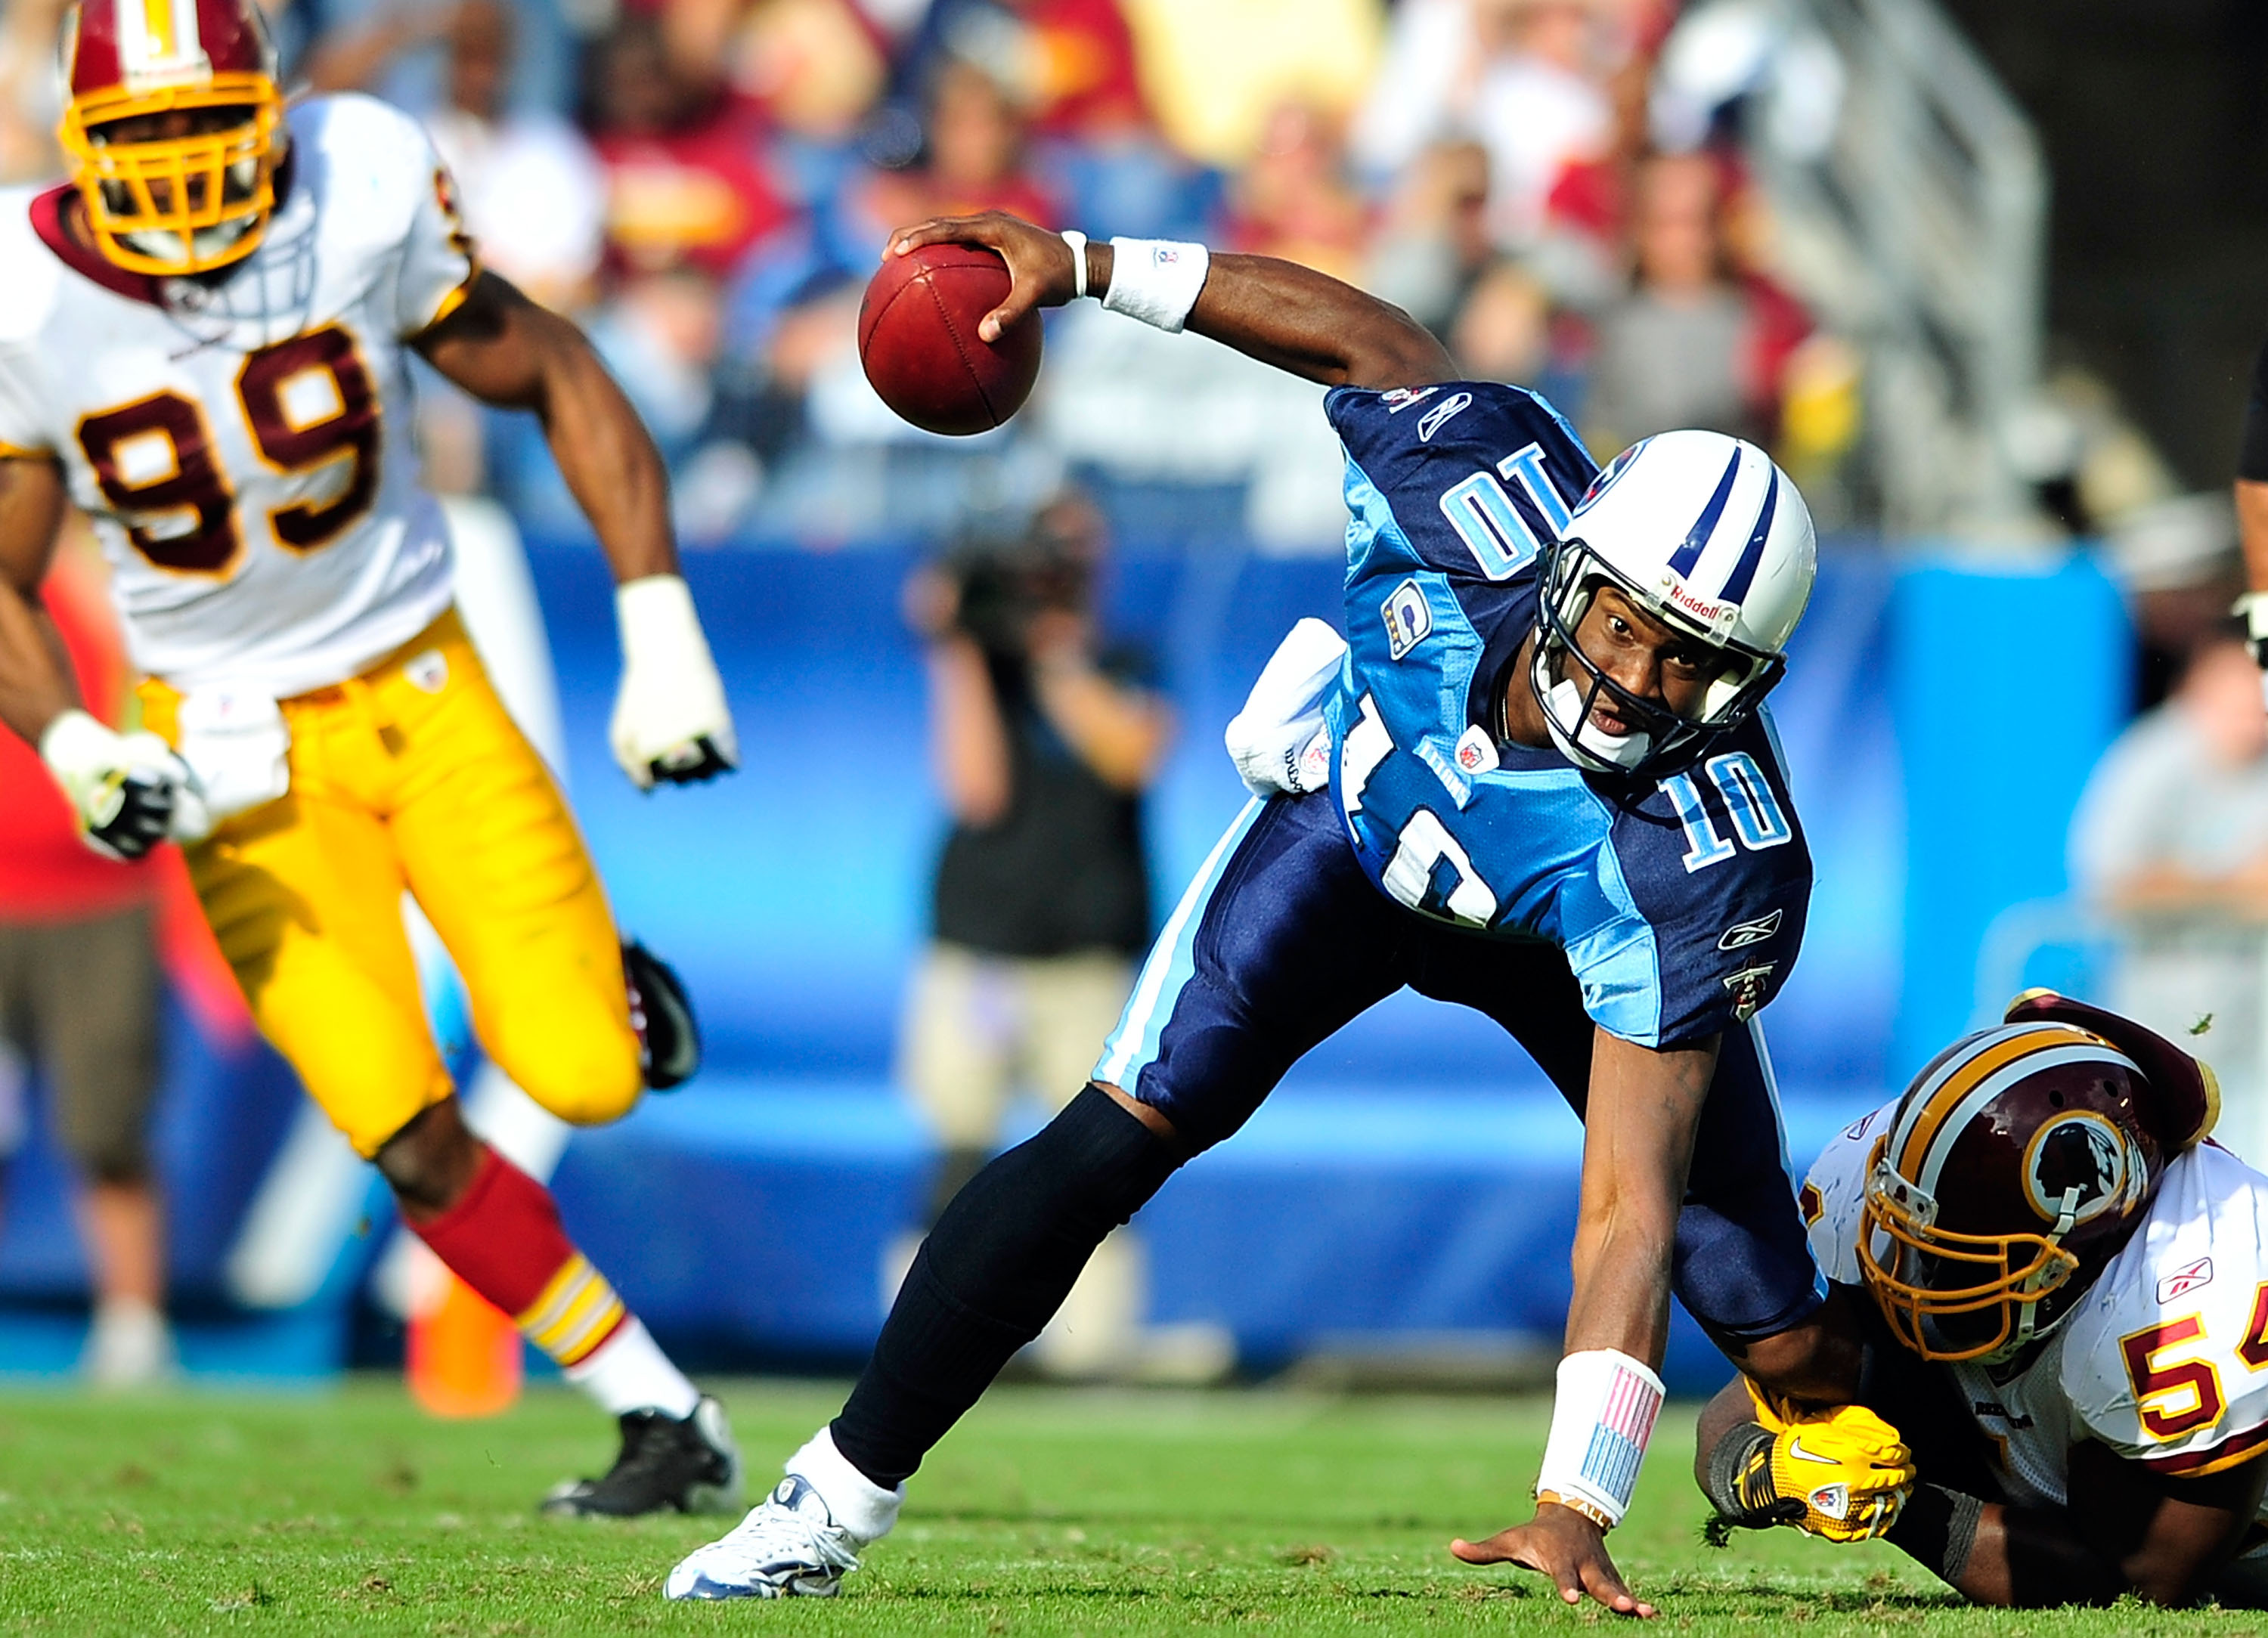 NASHVILLE, TN - NOVEMBER 21:  Quarterback Vince Young #10 of the Tennessee Titans scrambles away from H.B. Blades #54 of the Washington Redskins at LP Field on November 21, 2010 in Nashville, Tennessee. The Redskins won 19-16 in overtime.  (Photo by Grant